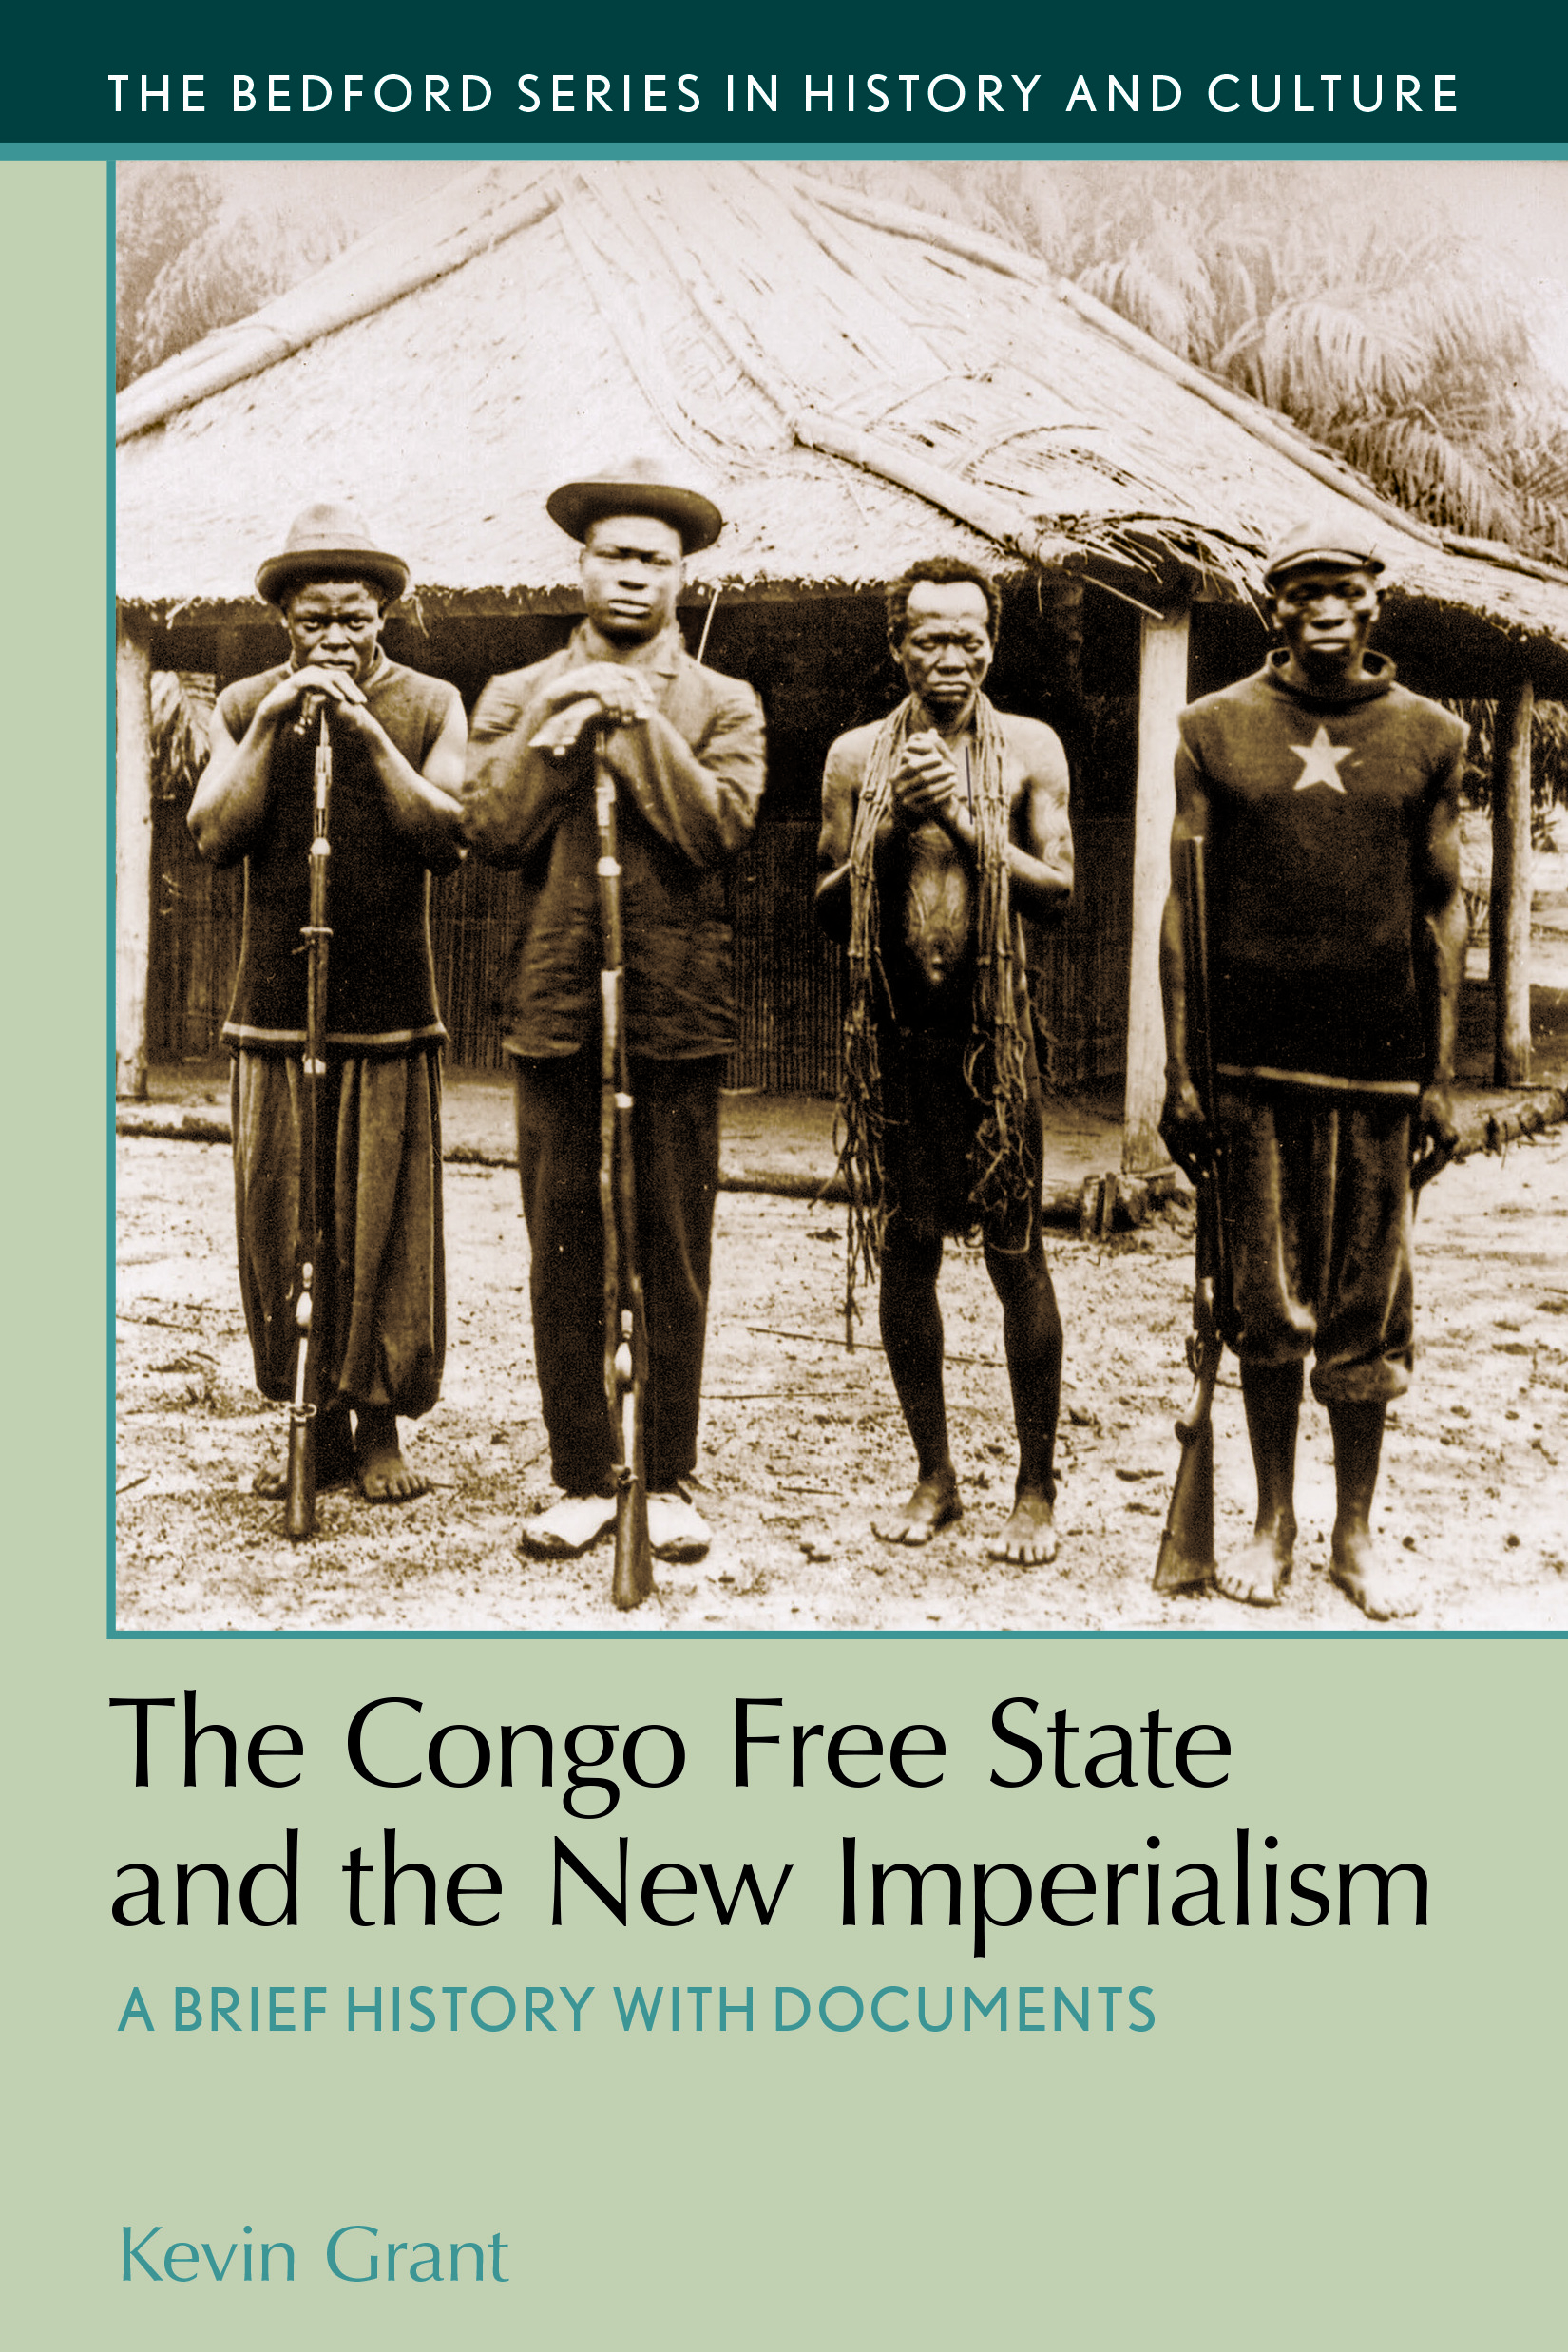 The Congo Free State and the New Imperialism